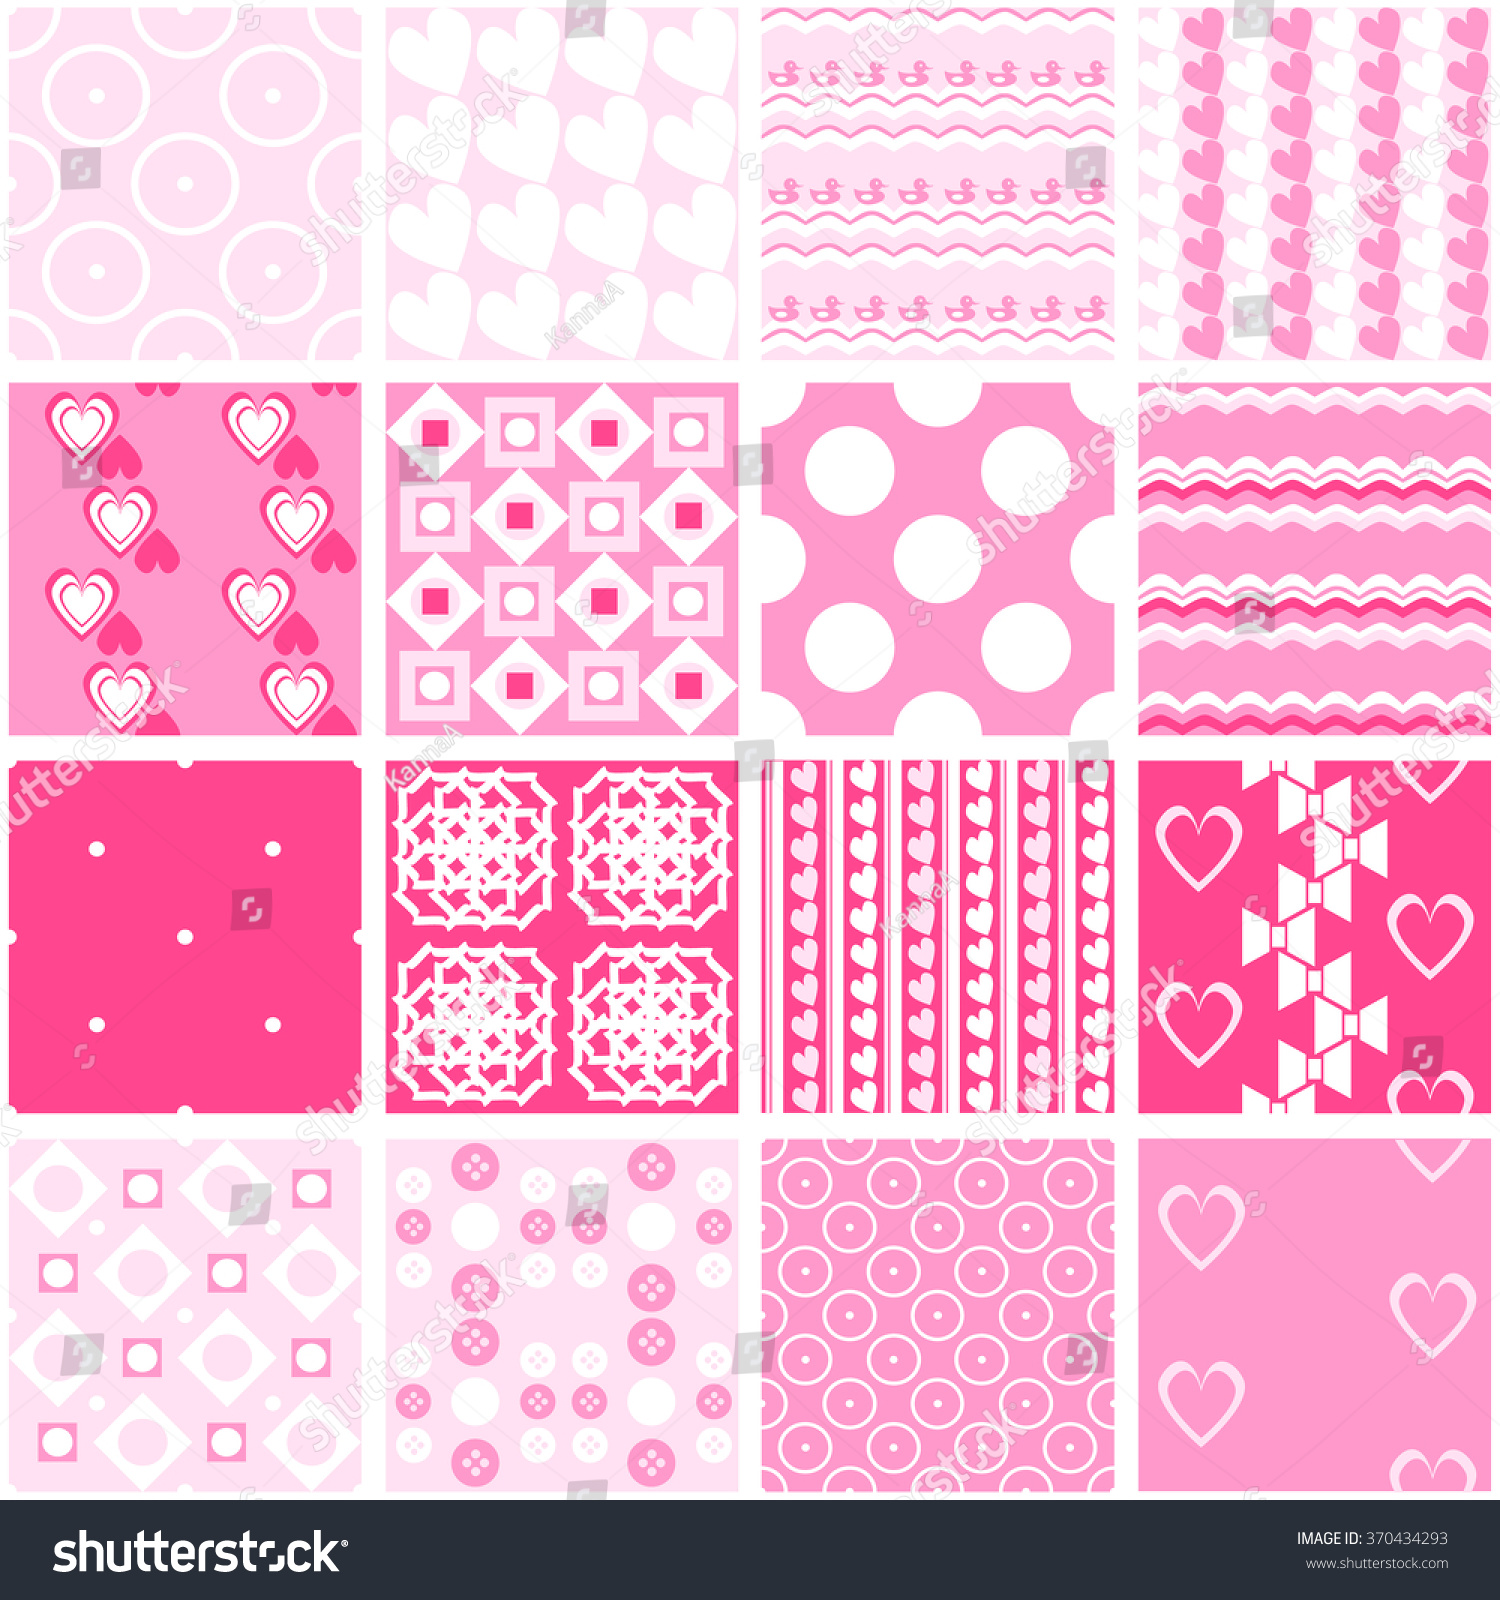 16 Cute Pink Vector Seamless Patterns 370434293